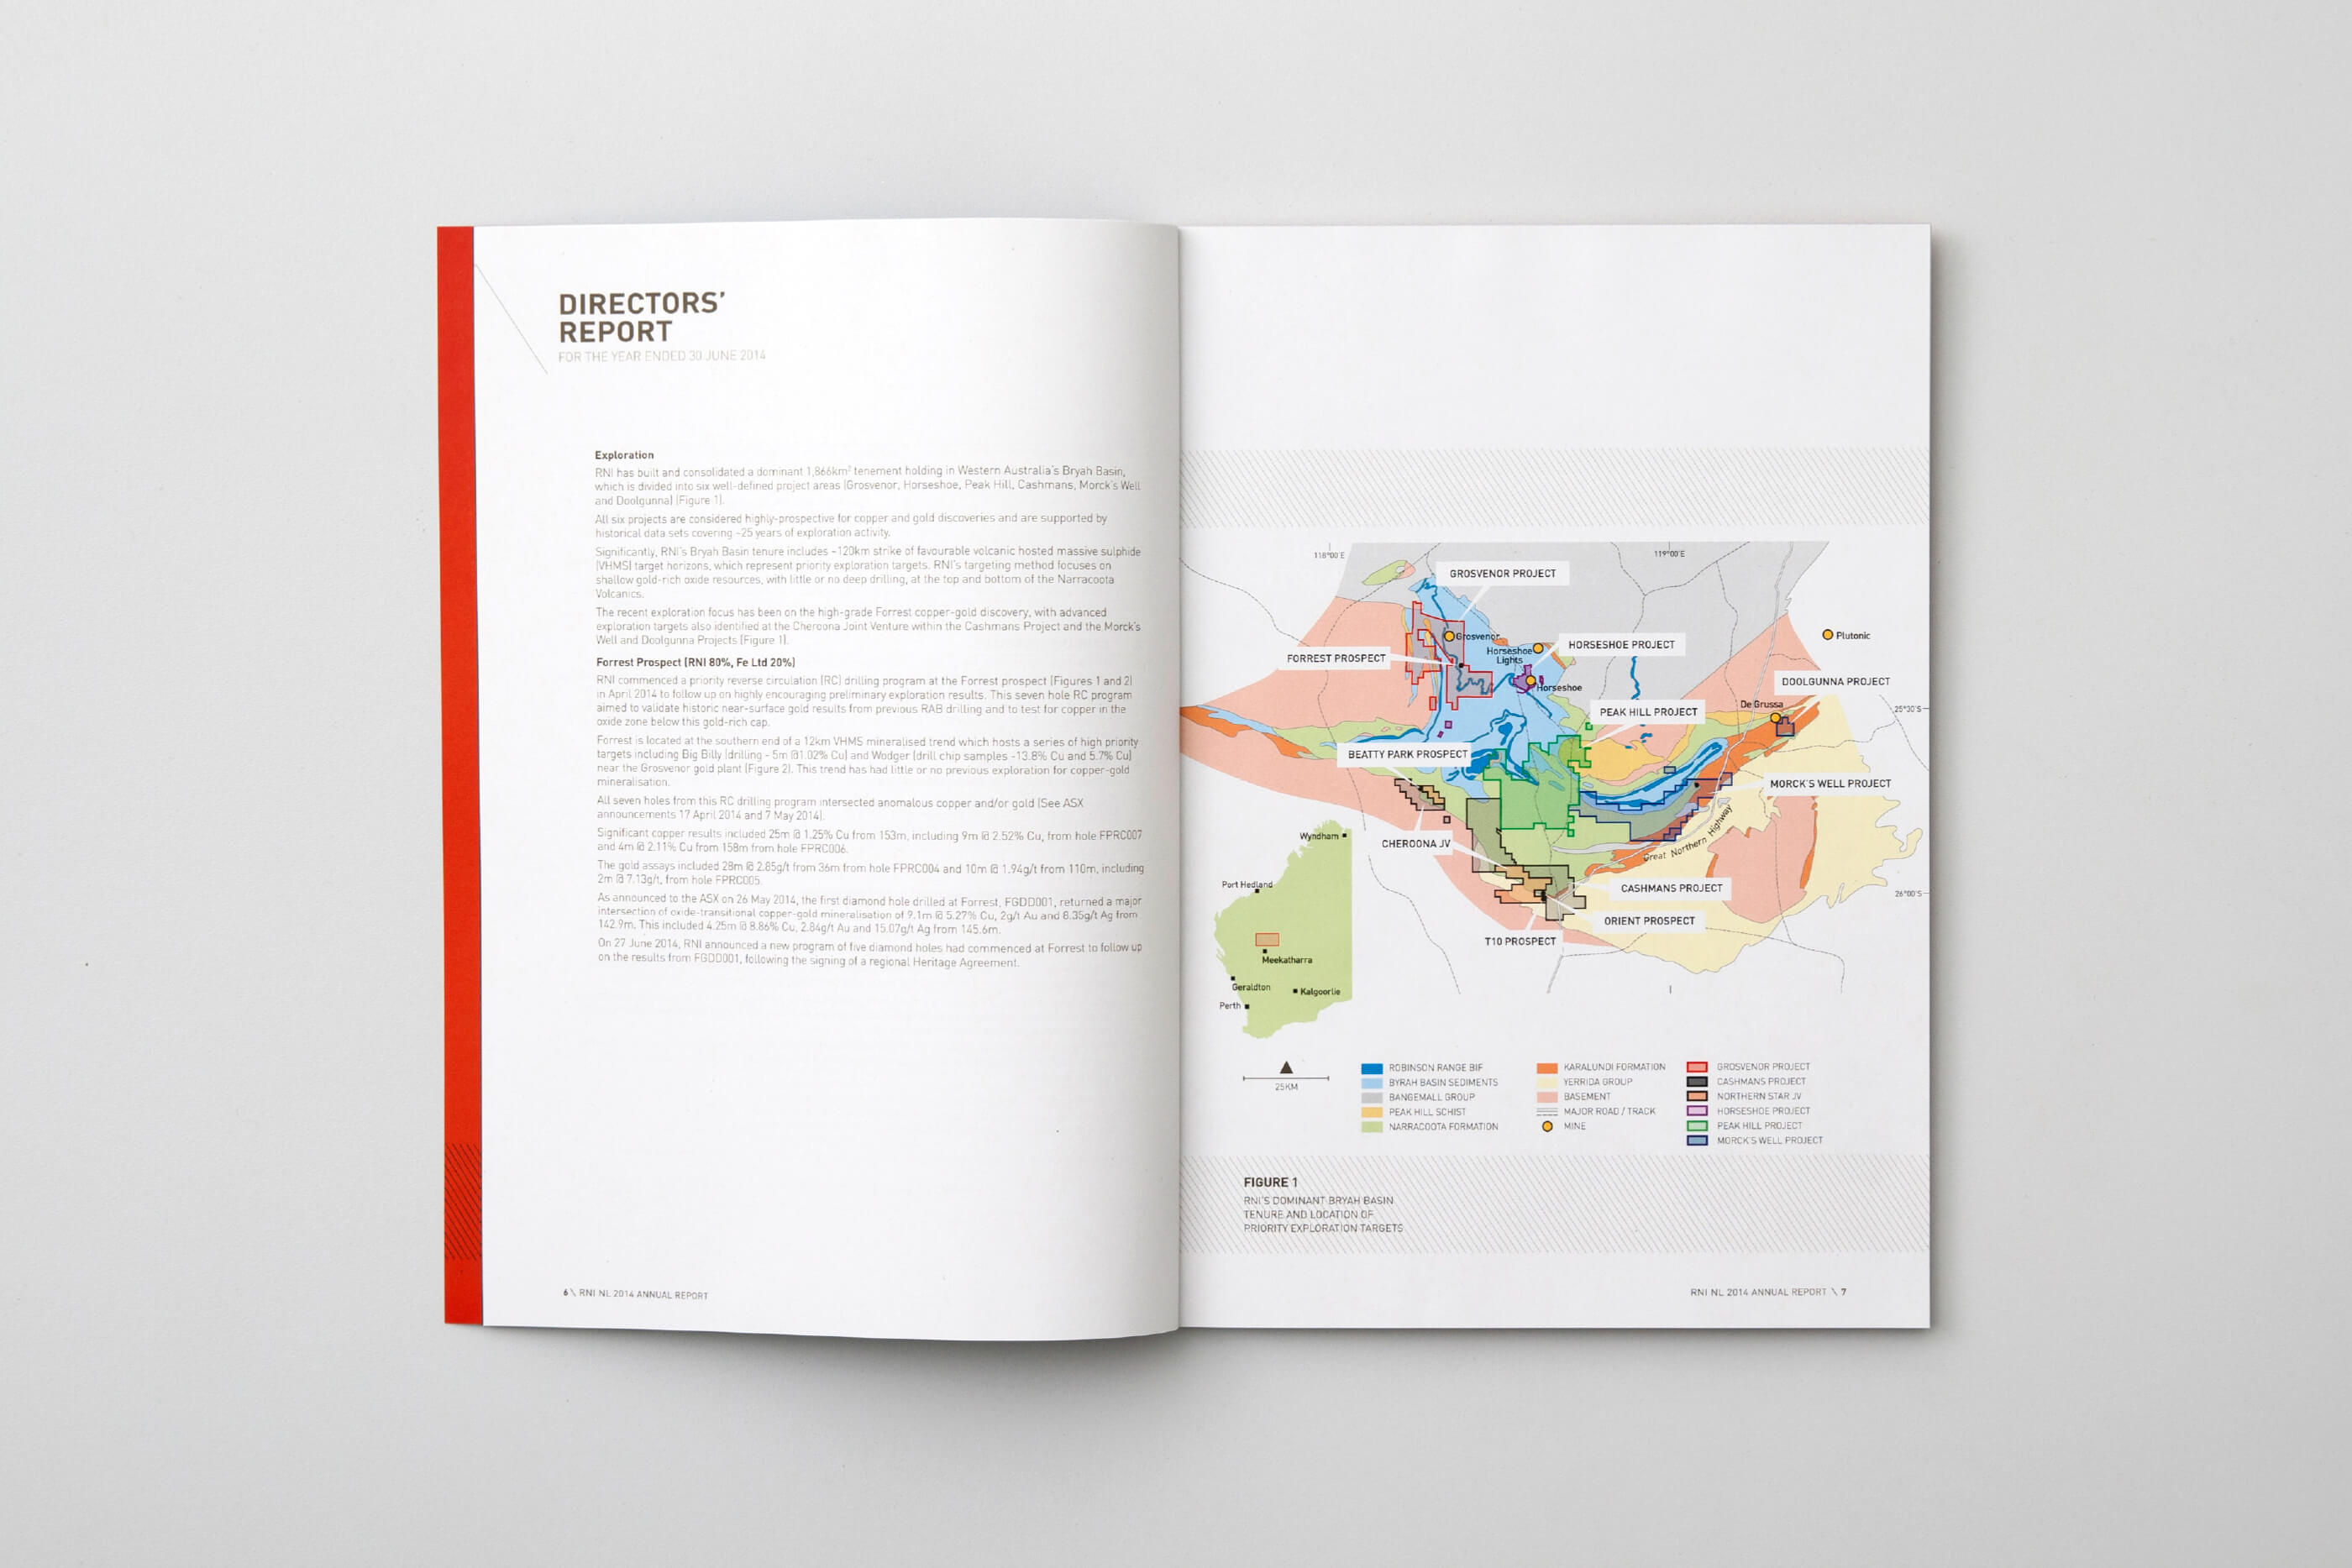 rni_annual_report_7